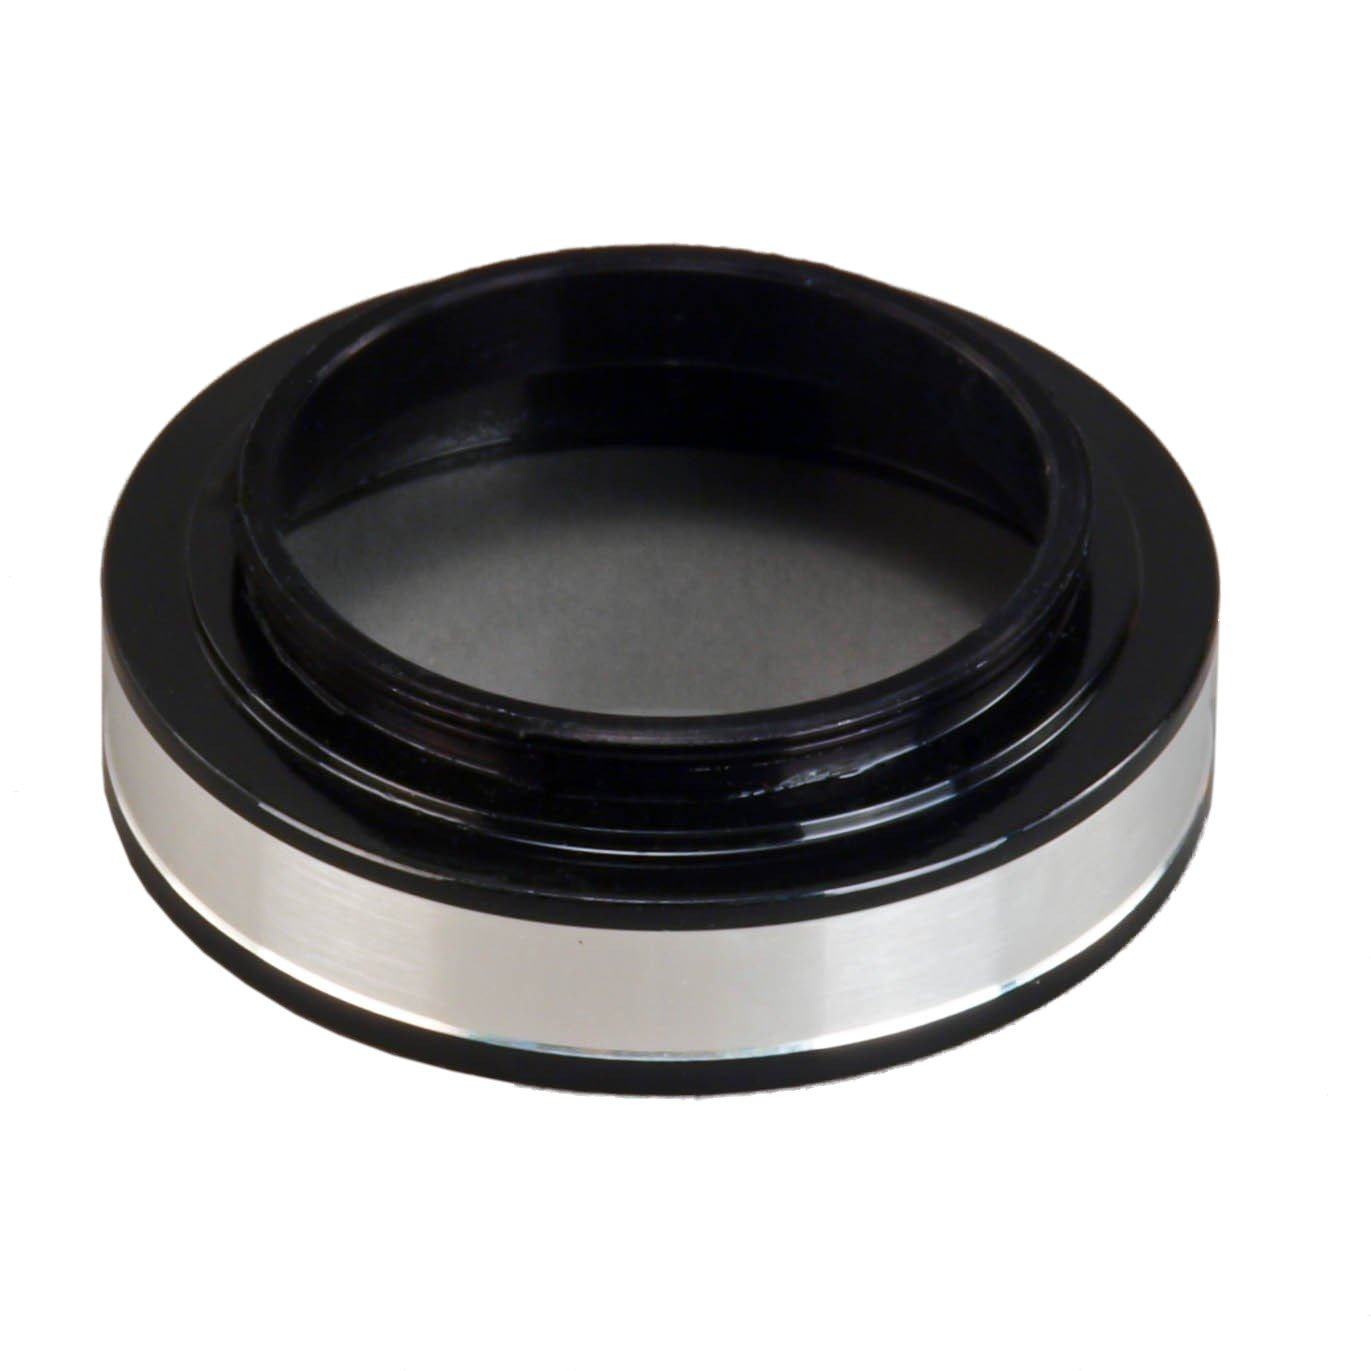 OMAX 38mm Thread Ring Light Adapter with Protection Glass for Bausch & Lomb Microscopes by OMAX